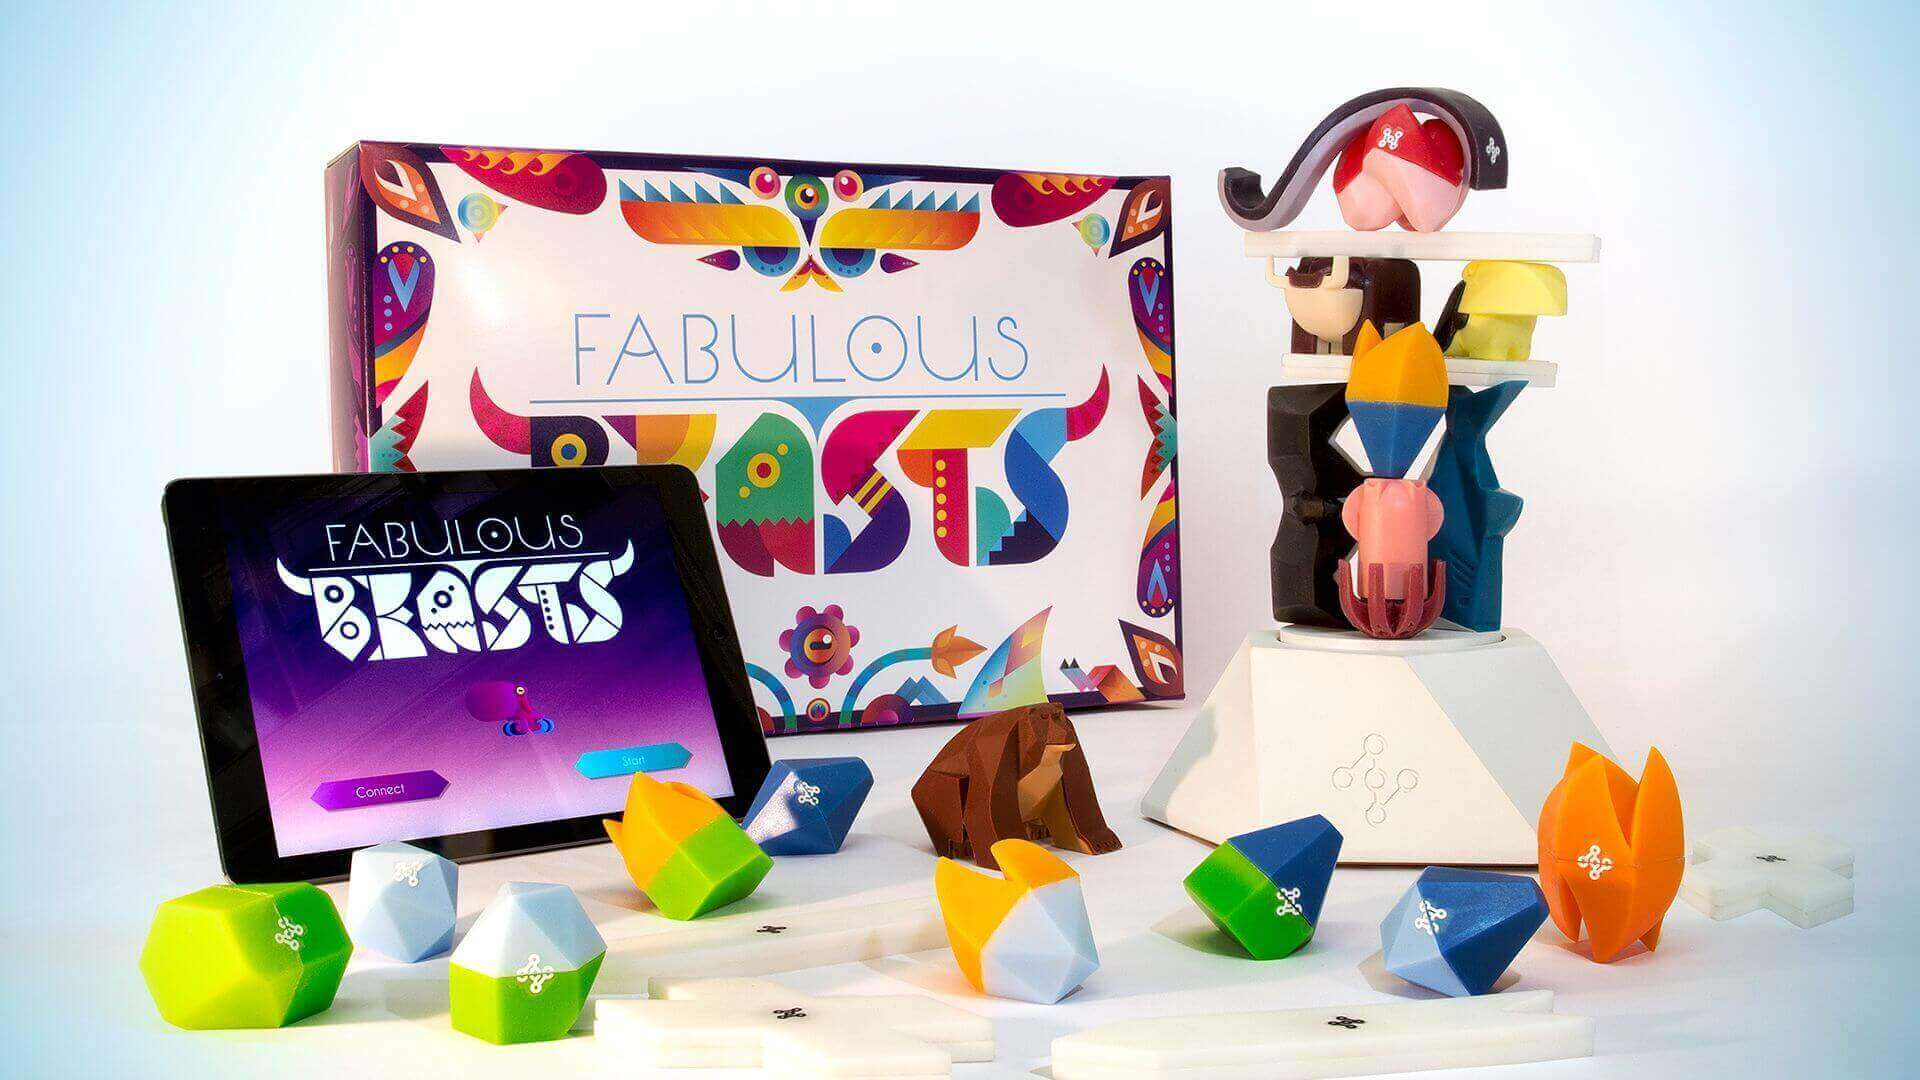 Fabulous Beasts is Jenga for the Maker Generation | All3DP